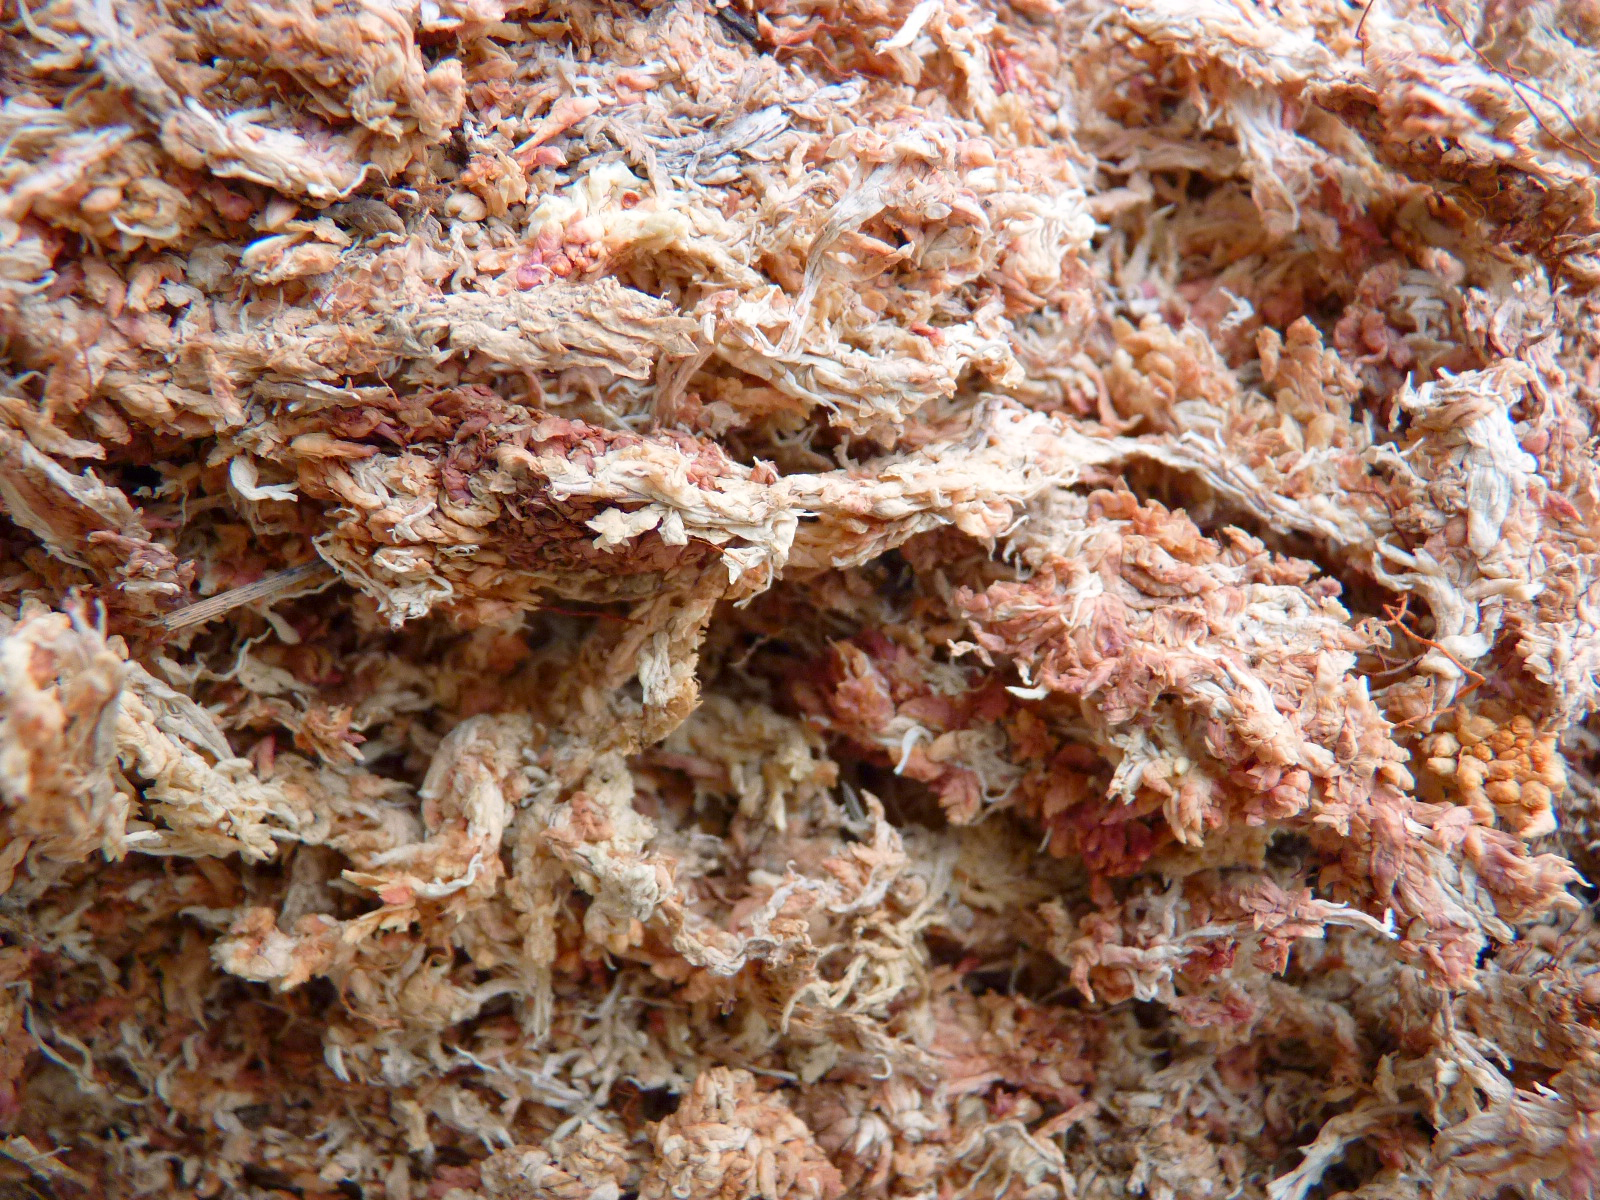 Dried sphagnum moss (ground)